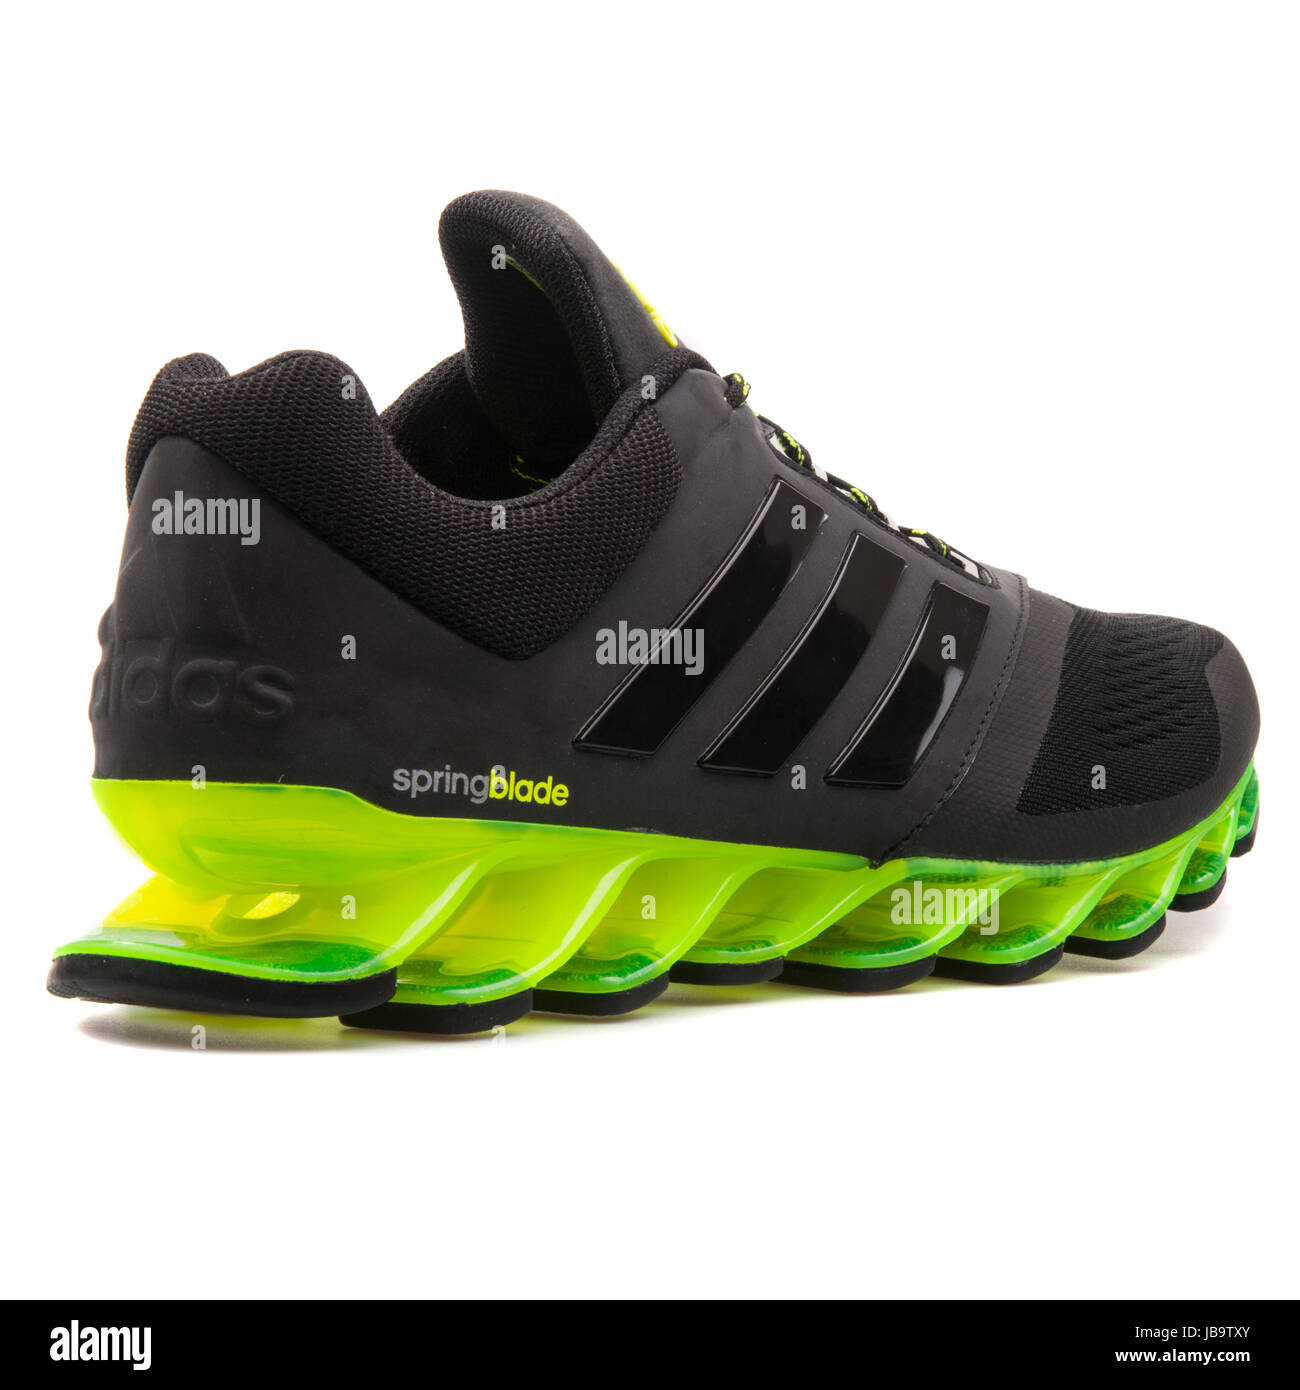 on sale 50168 3d9db Adidas Springblade Drive 2 m Black and Green Men's Running ...